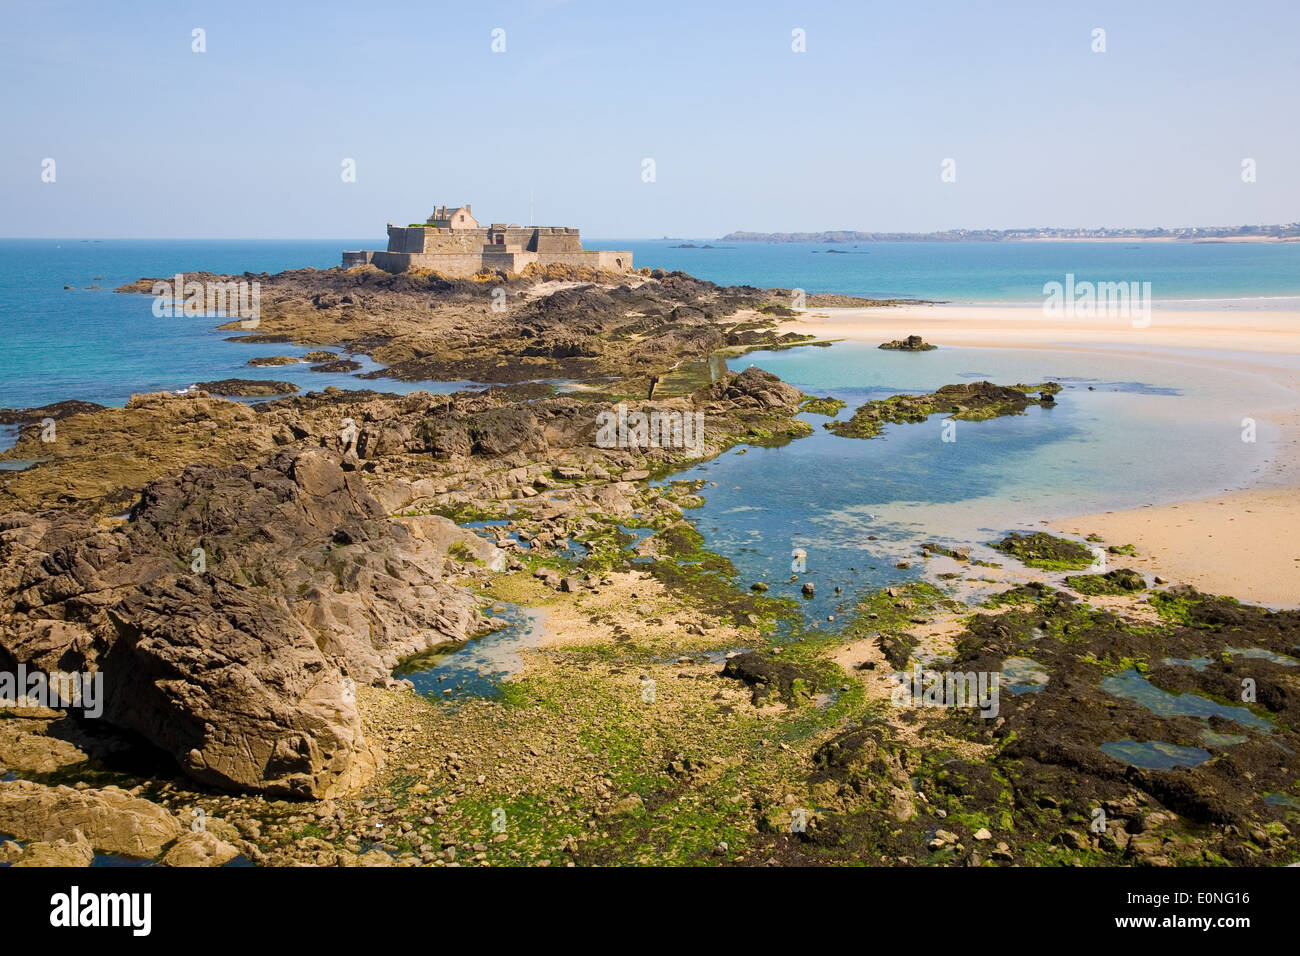 Fort National and beach from Saint Malo, during low tide. Brittany, France - Stock Image